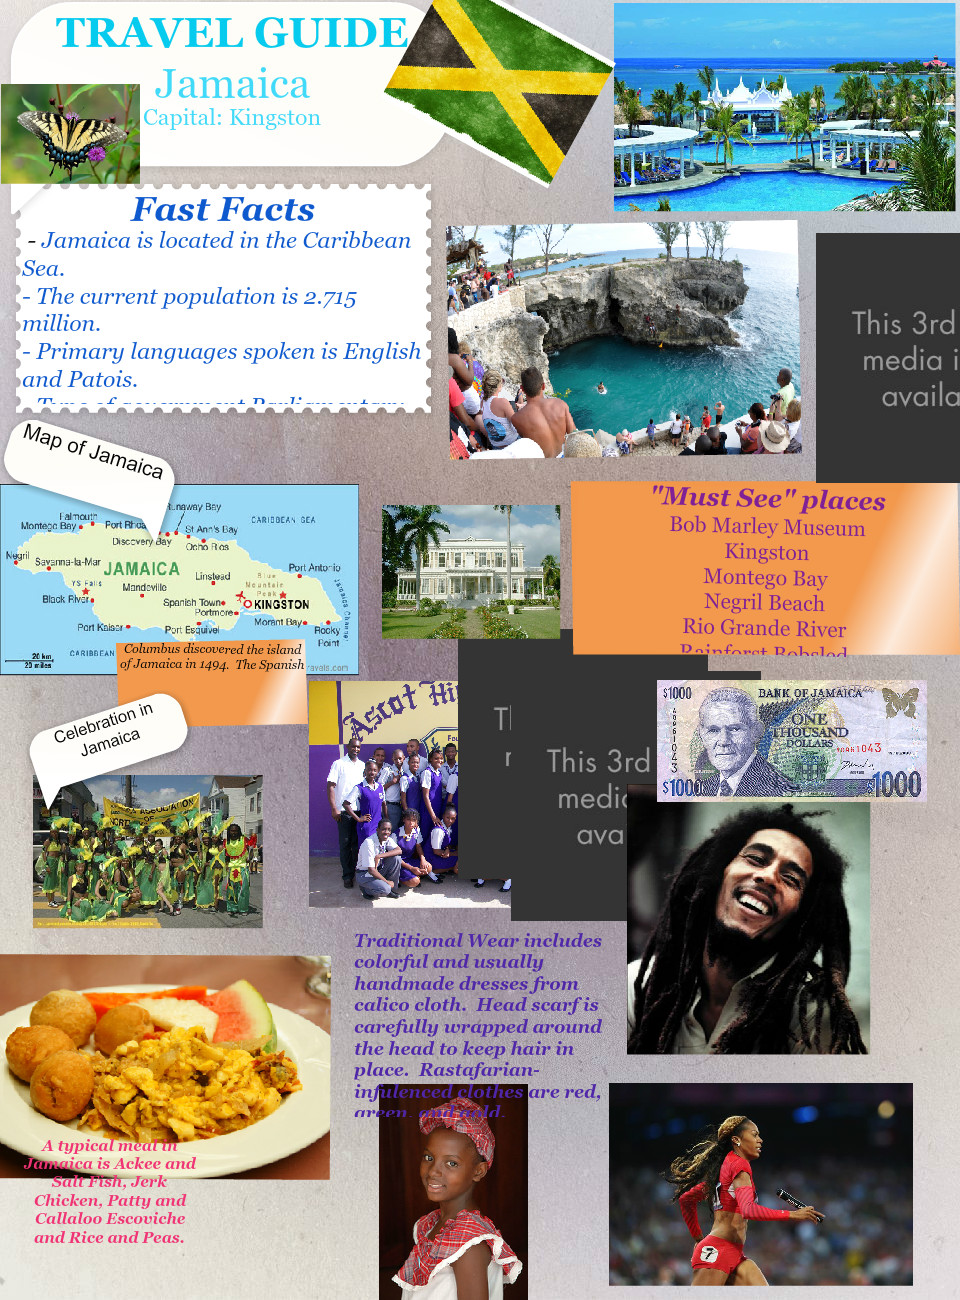 Natalie's Jamaica Project: text, images, music, video | Glogster EDU